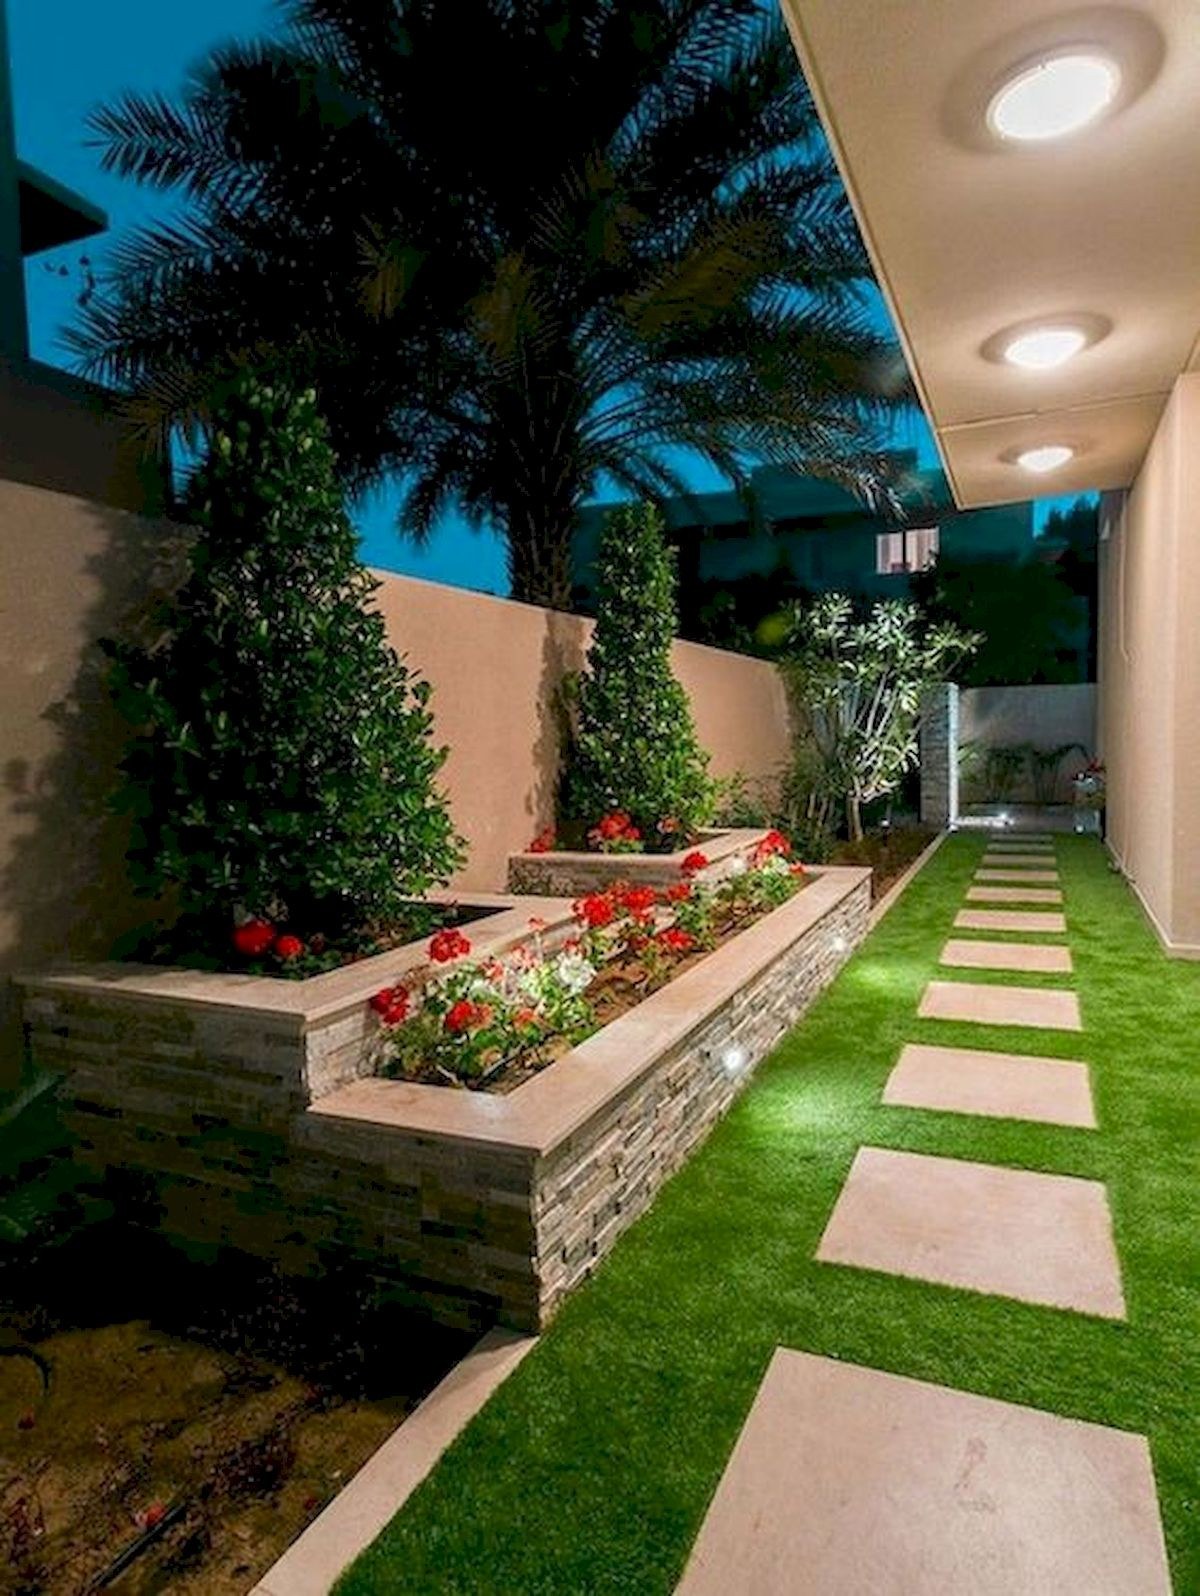 Outdoor Landscaping Ideas  50 Awesome Side Yard Garden Landscaping Ideas for Your